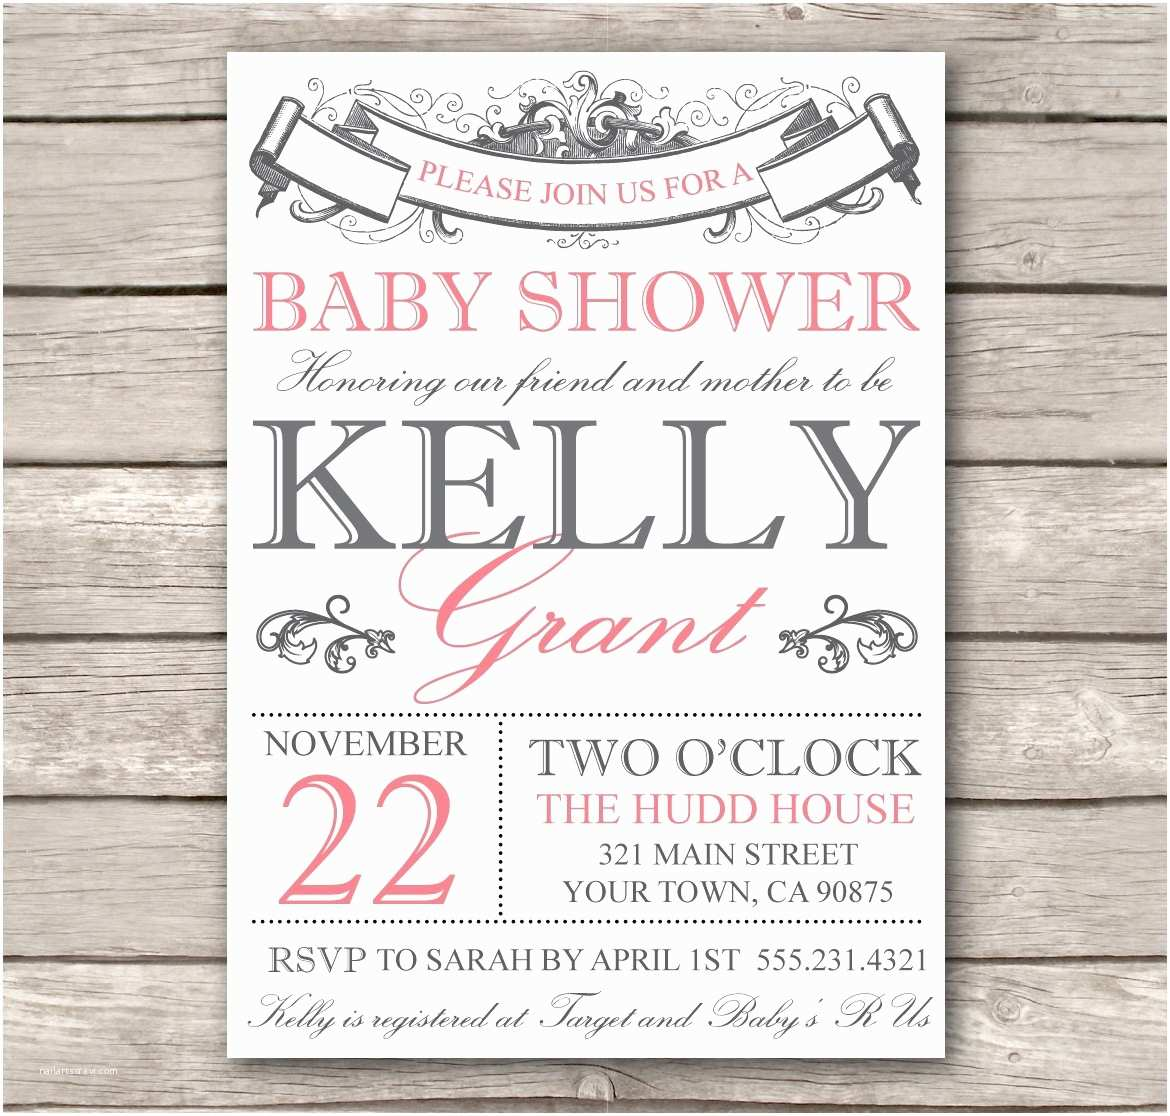 Make Your Own Wedding Shower Invitations Free Design Invitations Line Free Template Resume Builder